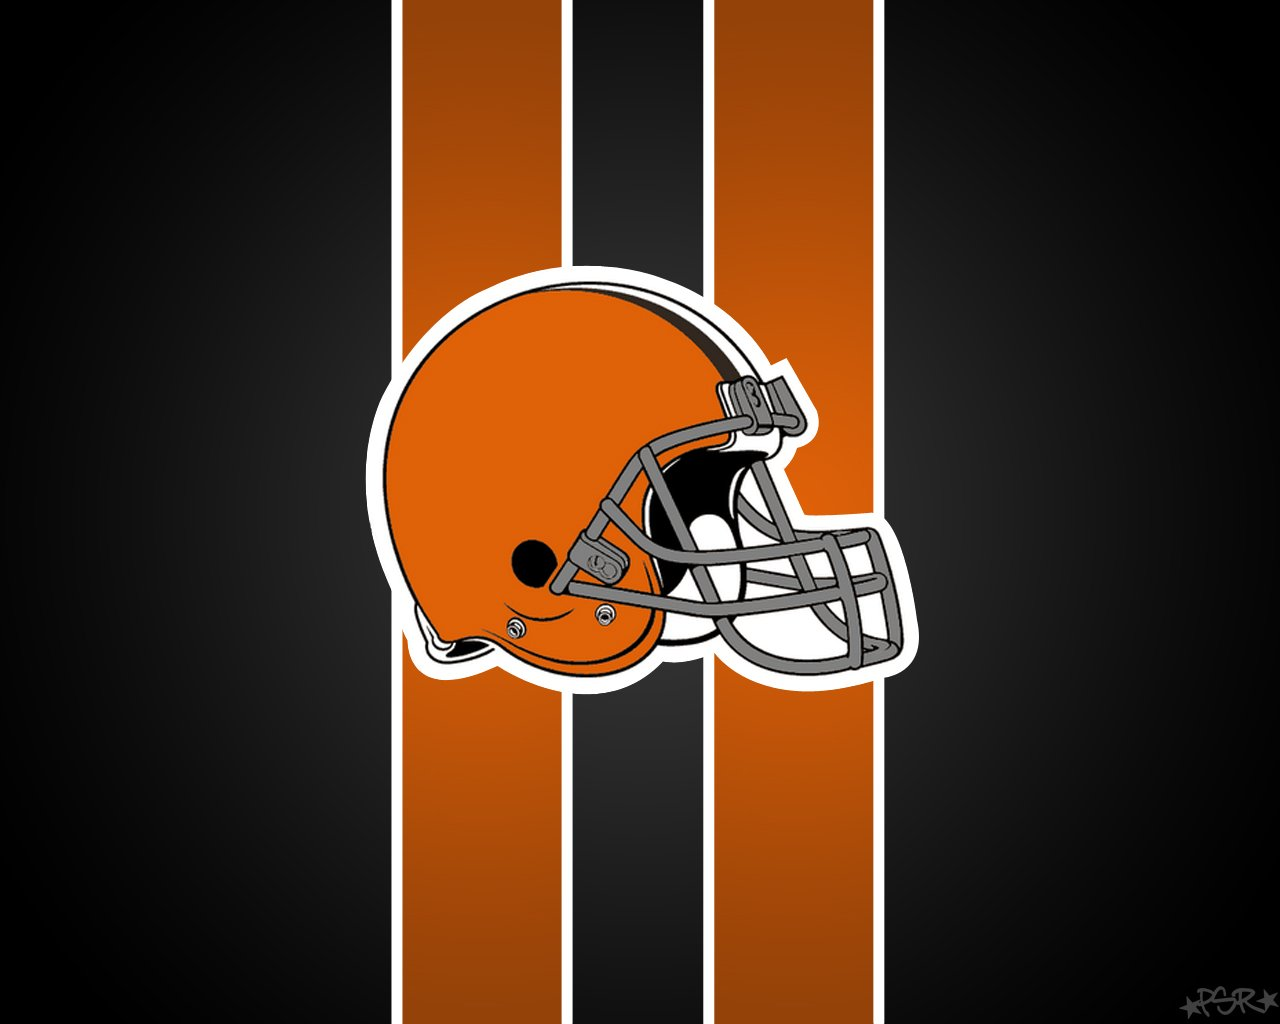 The Cleveland Browns still have a chance at a playoff berth despite a 571 record Safety Damarious Randall said the Browns feel they deserve one of the six spots